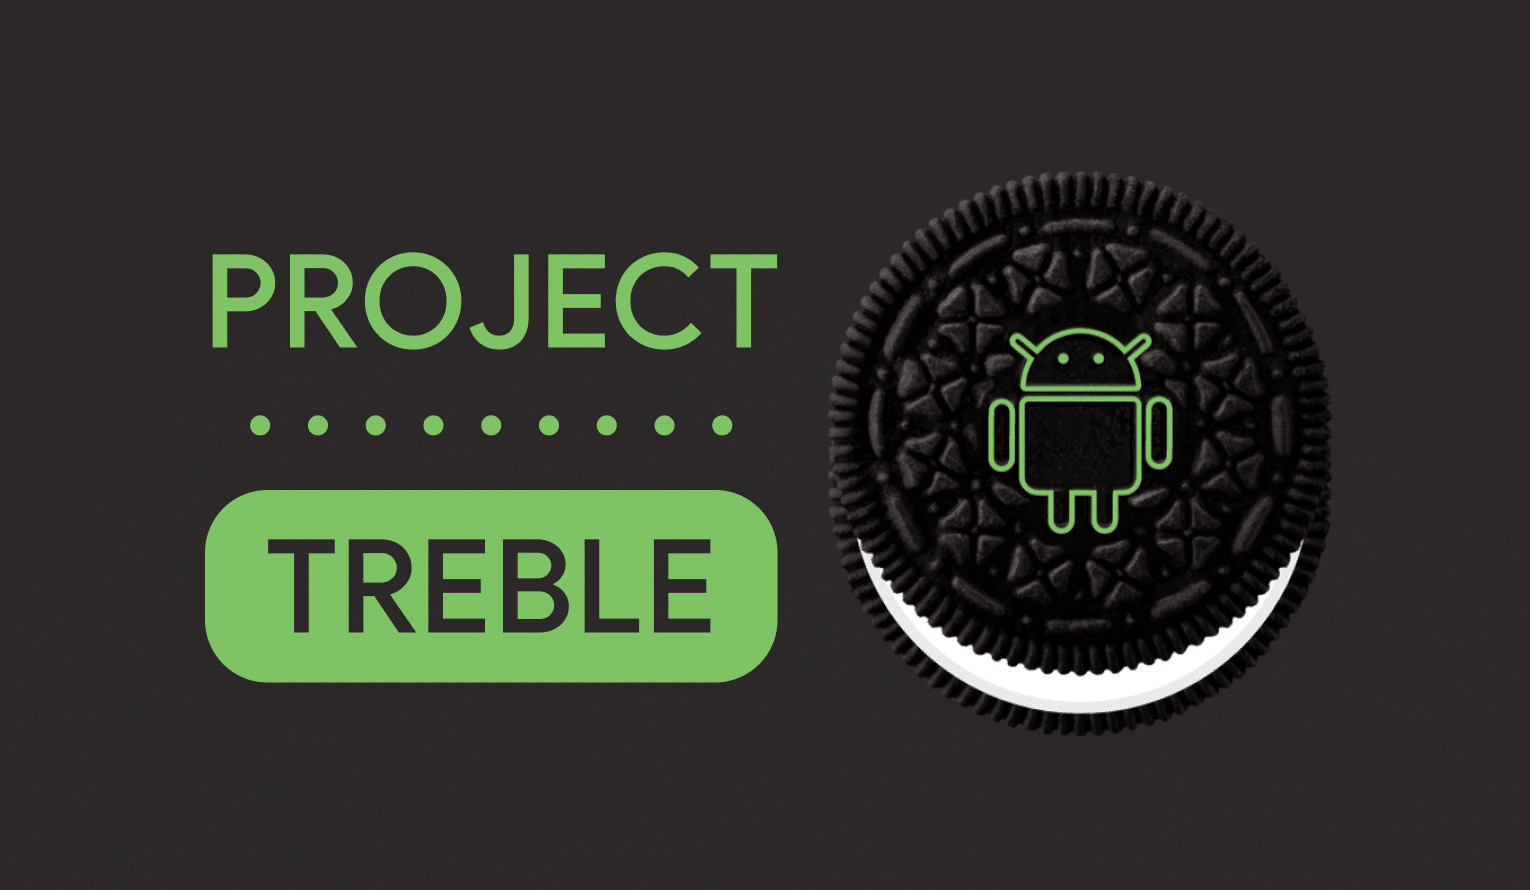 compatible con Project Treble